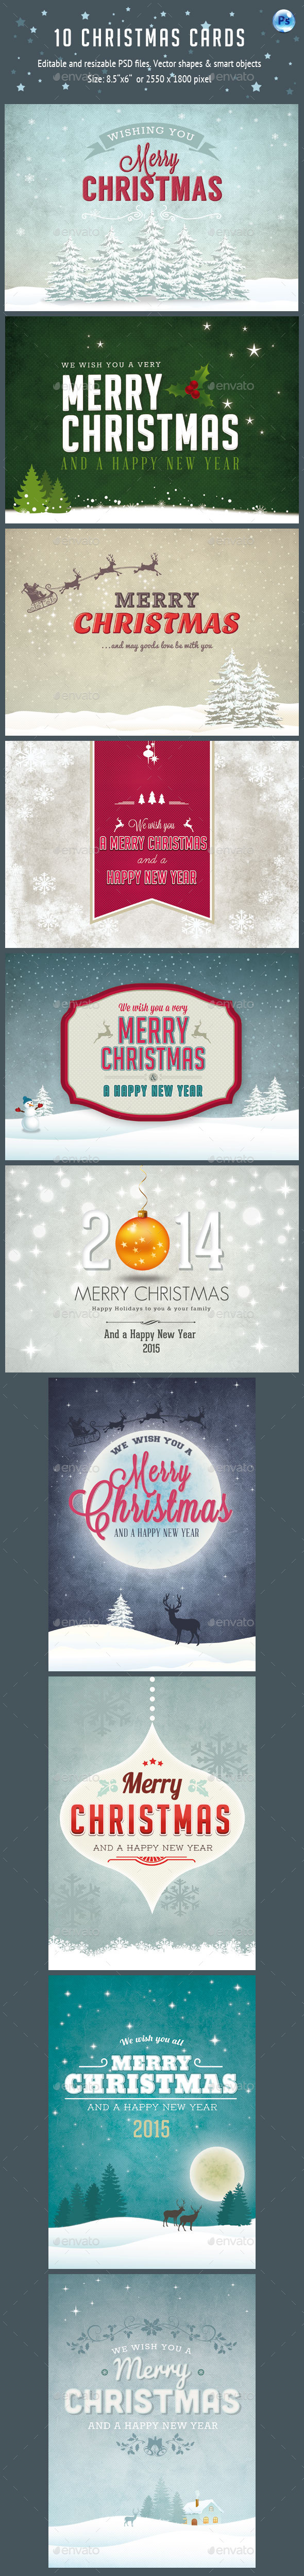 GraphicRiver 10 Christmas Cards PSD Vol.2 9332085